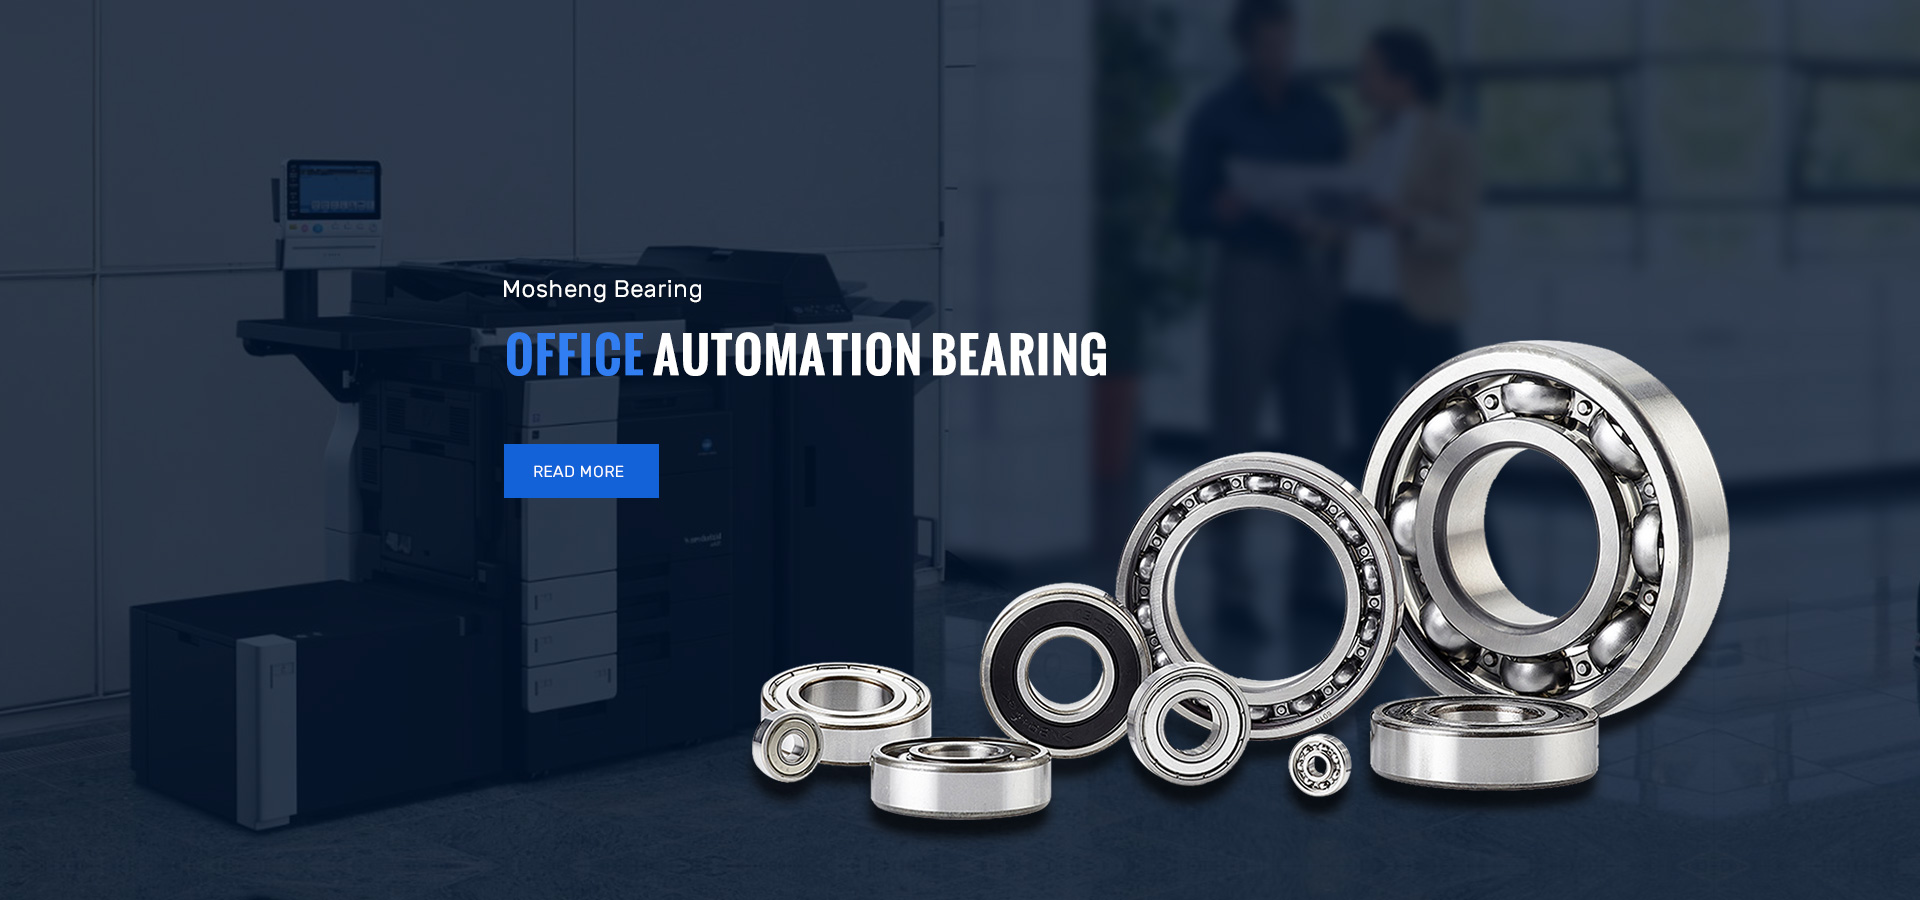 Office Automation Bearing